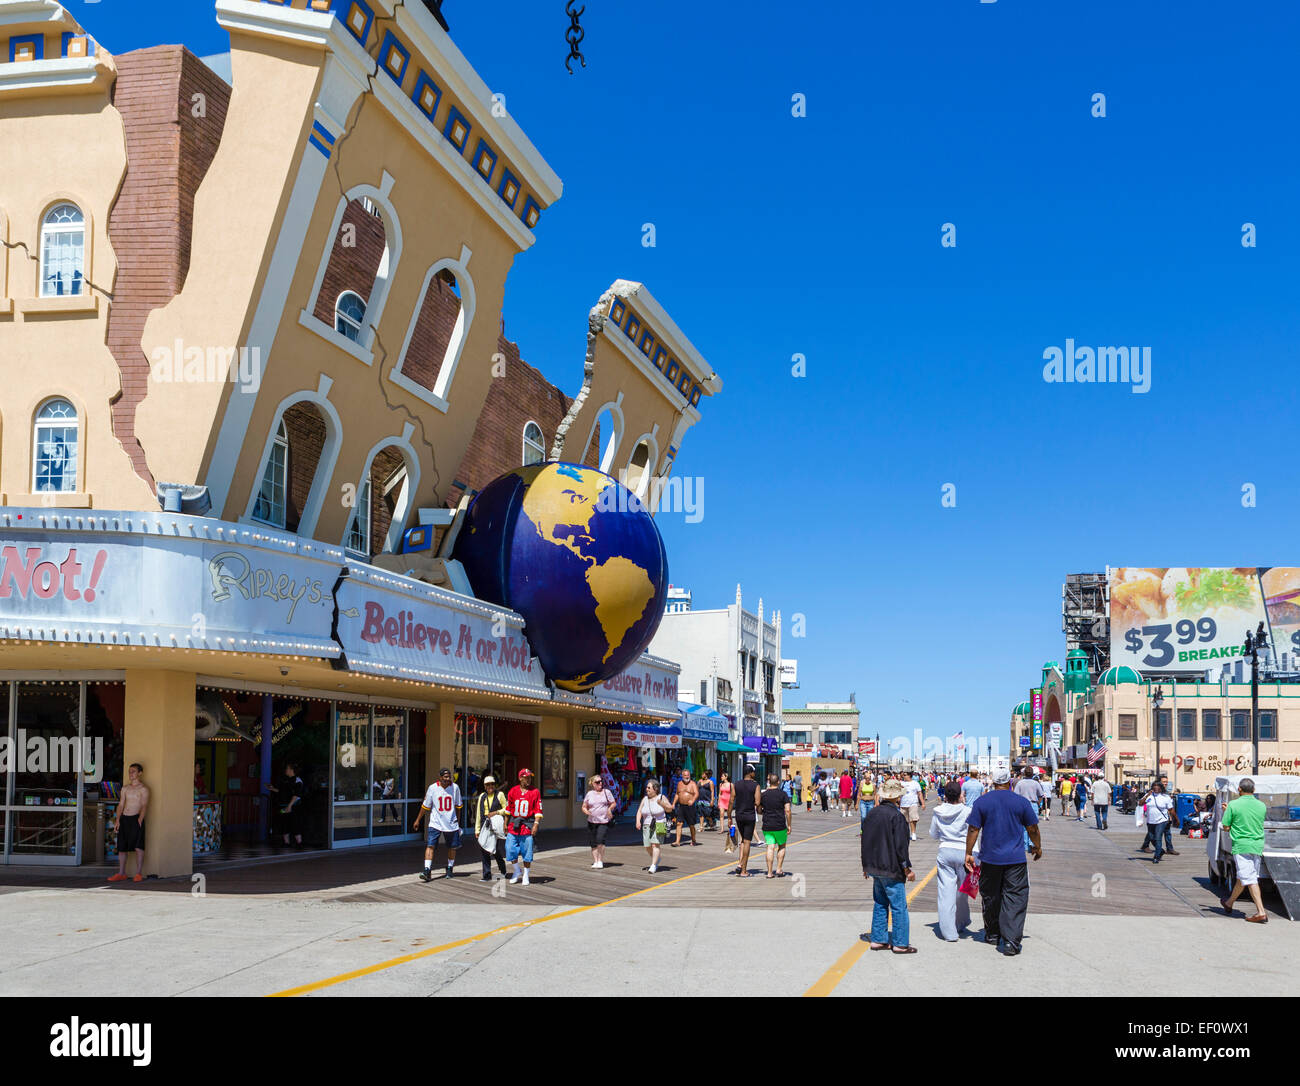 Ripley's Believe It or Not on the Boardwalk in Atlantic City, New Jersey, USA - Stock Image